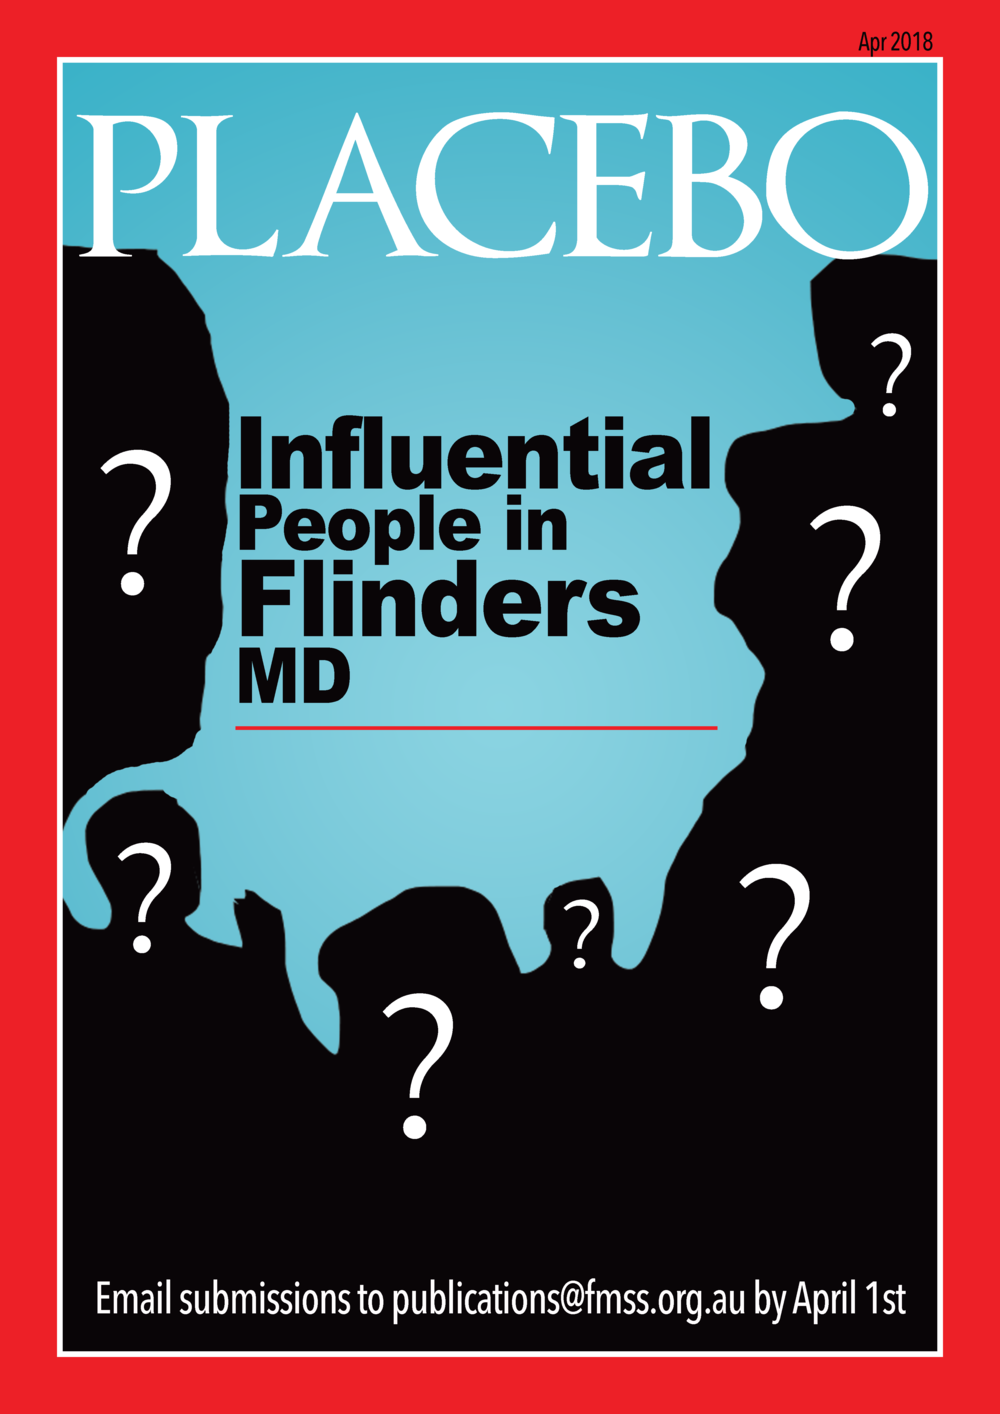 The first issue for 2018 focuses on the things and people that influence our journey in Medicine. Maybe you have even been doing some incredibly influential things within and outside Medicine. If so we want to hear from you by April 1st.